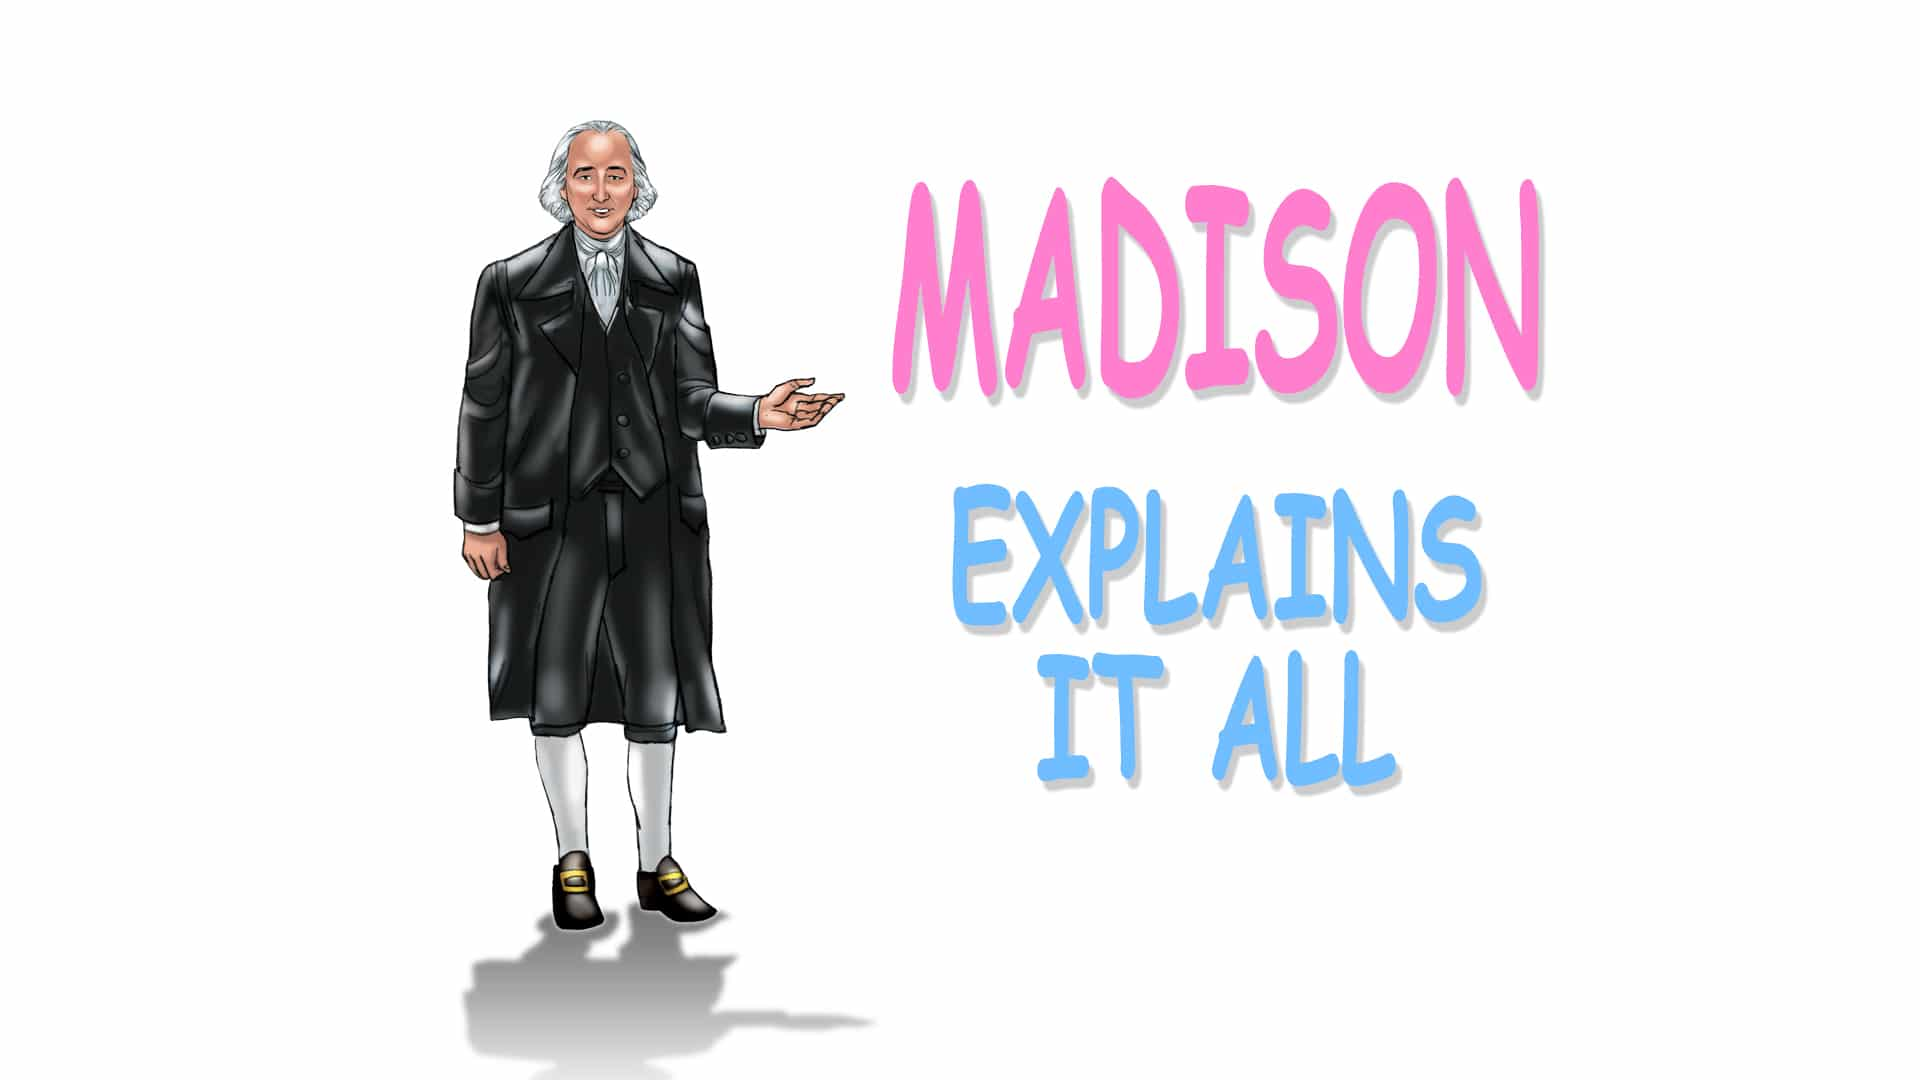 madison-wouldn't-approve-bolton's-war